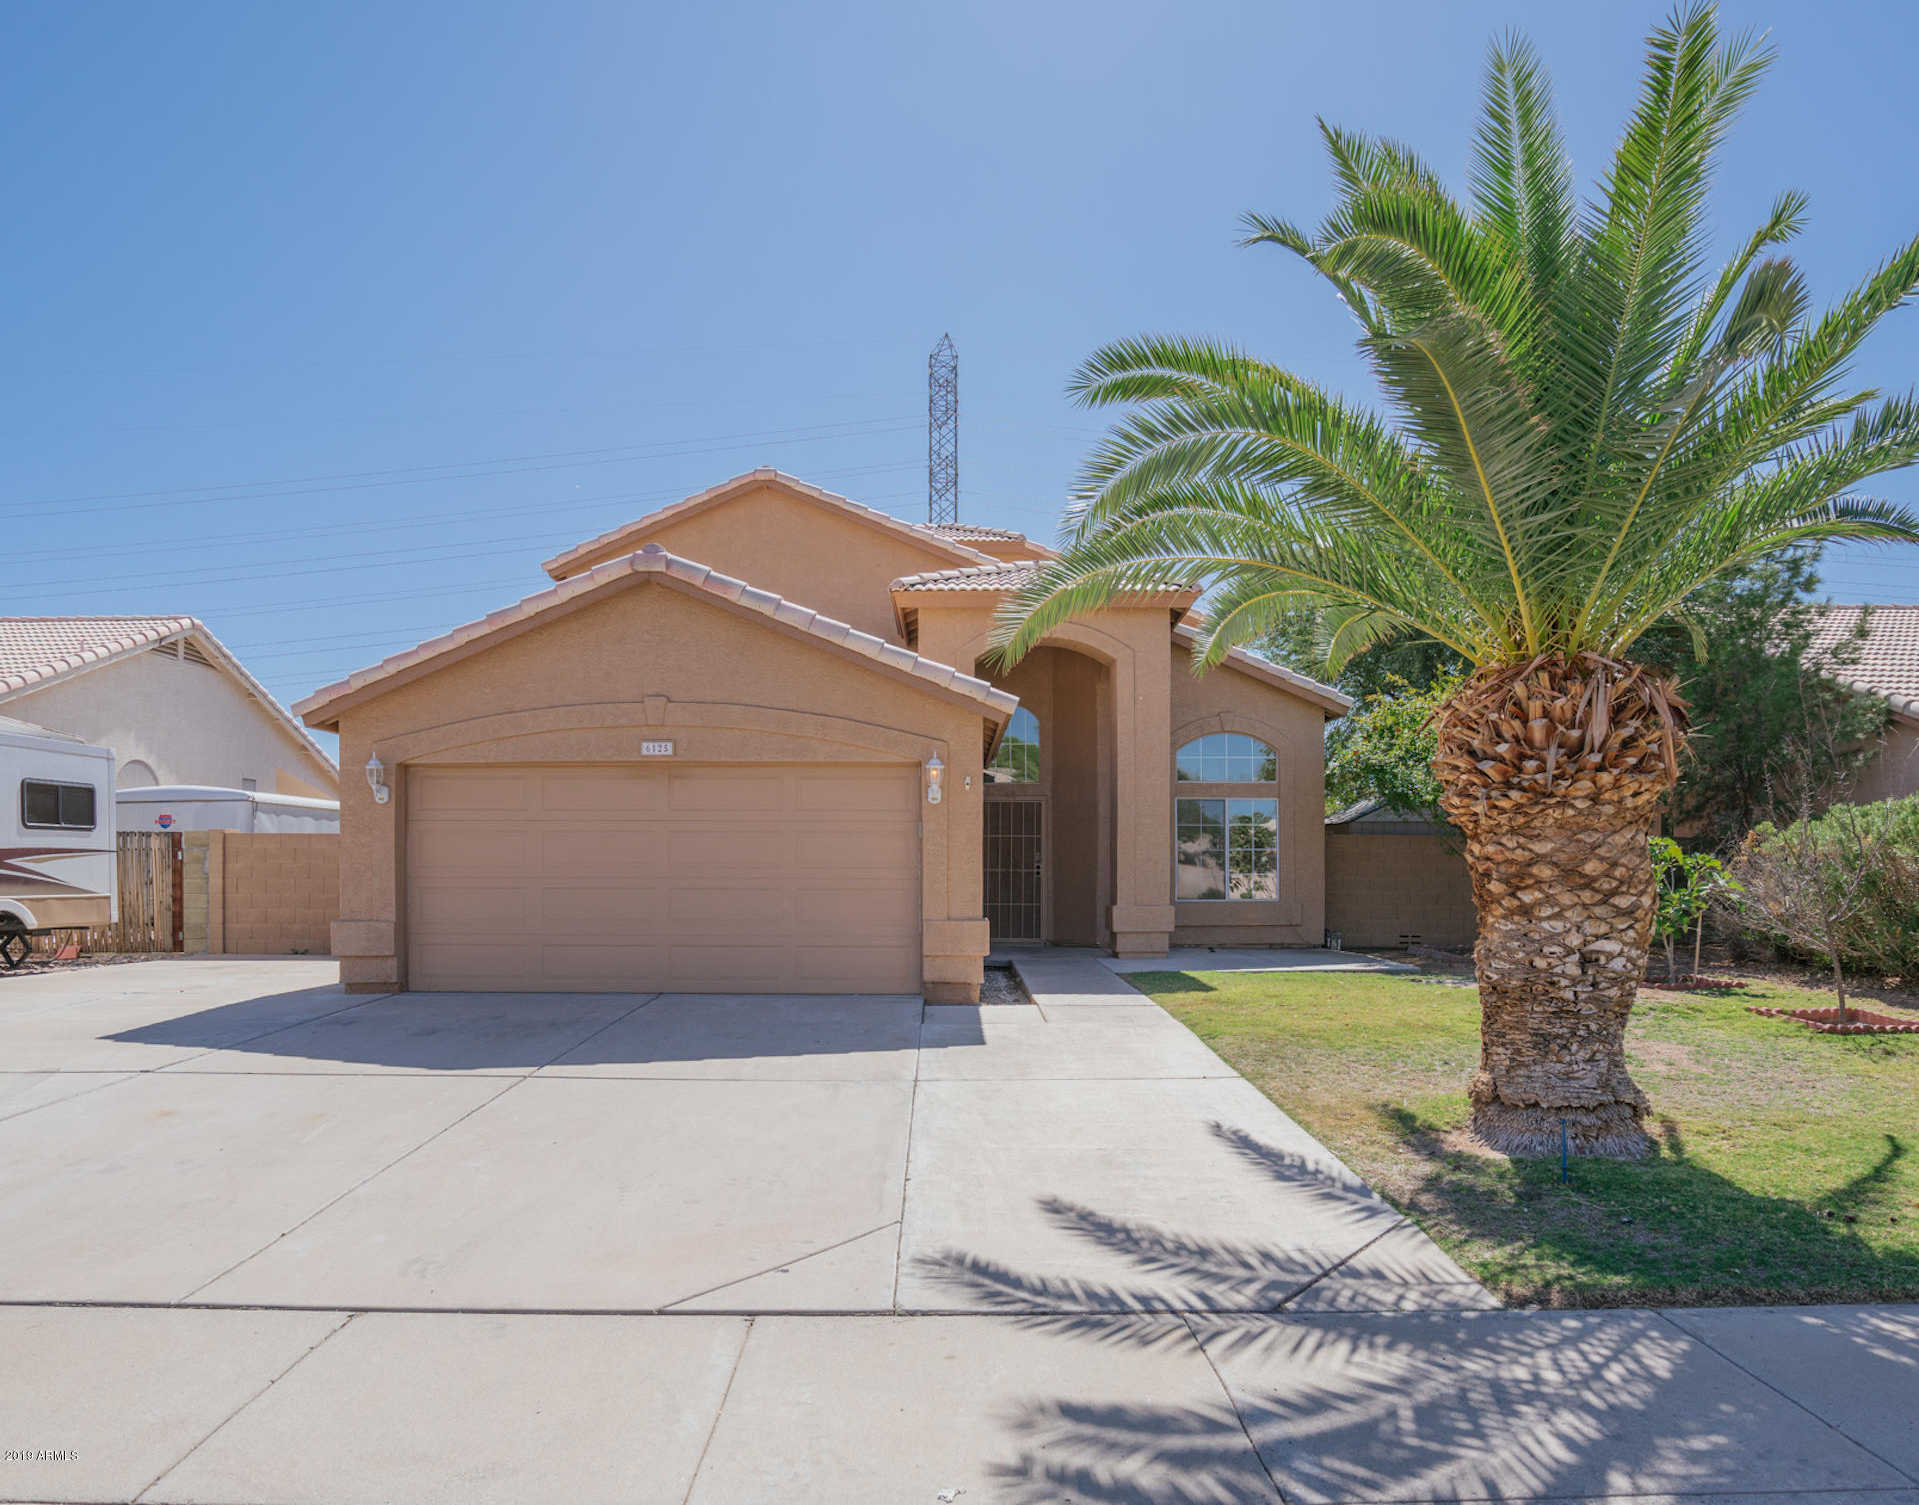 $322,000 - 4Br/3Ba - Home for Sale in Pinnacle Heights 3, Glendale